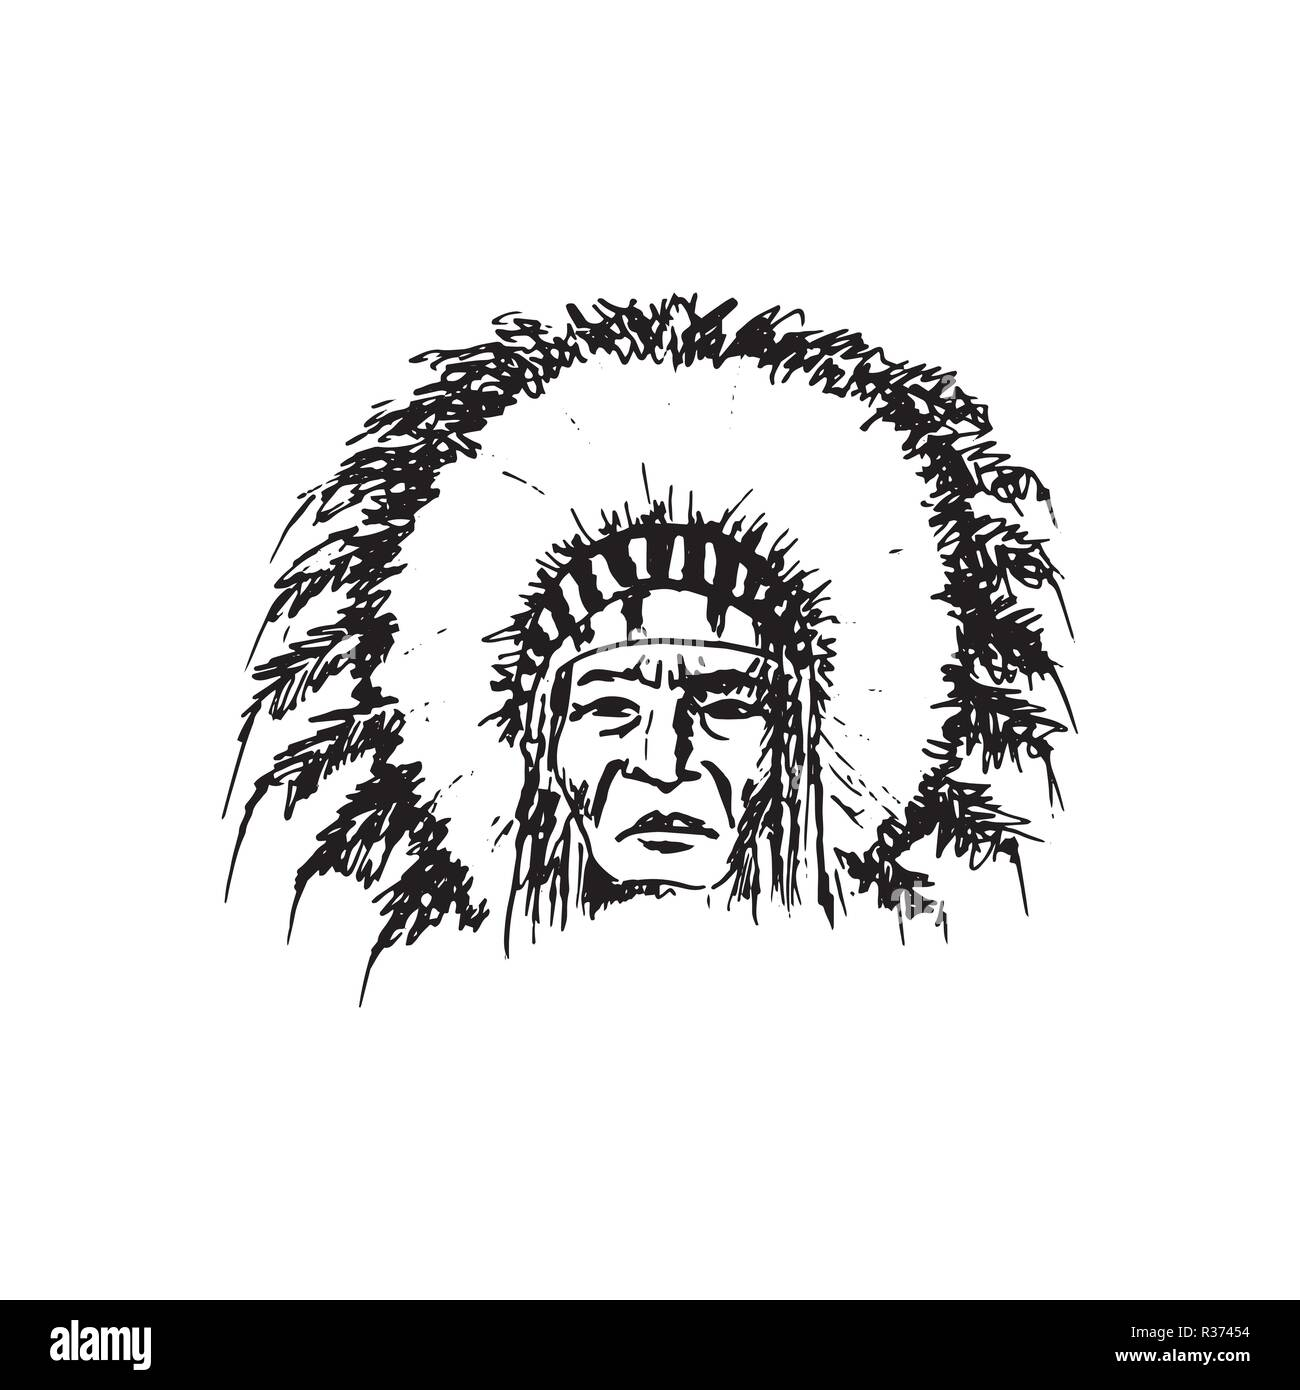 Stylized cartoon sketch North American Indian chief redskin man , face, isolated on white. Black roach. Indian feather headdress of eagle. ink pen. Fo - Stock Image